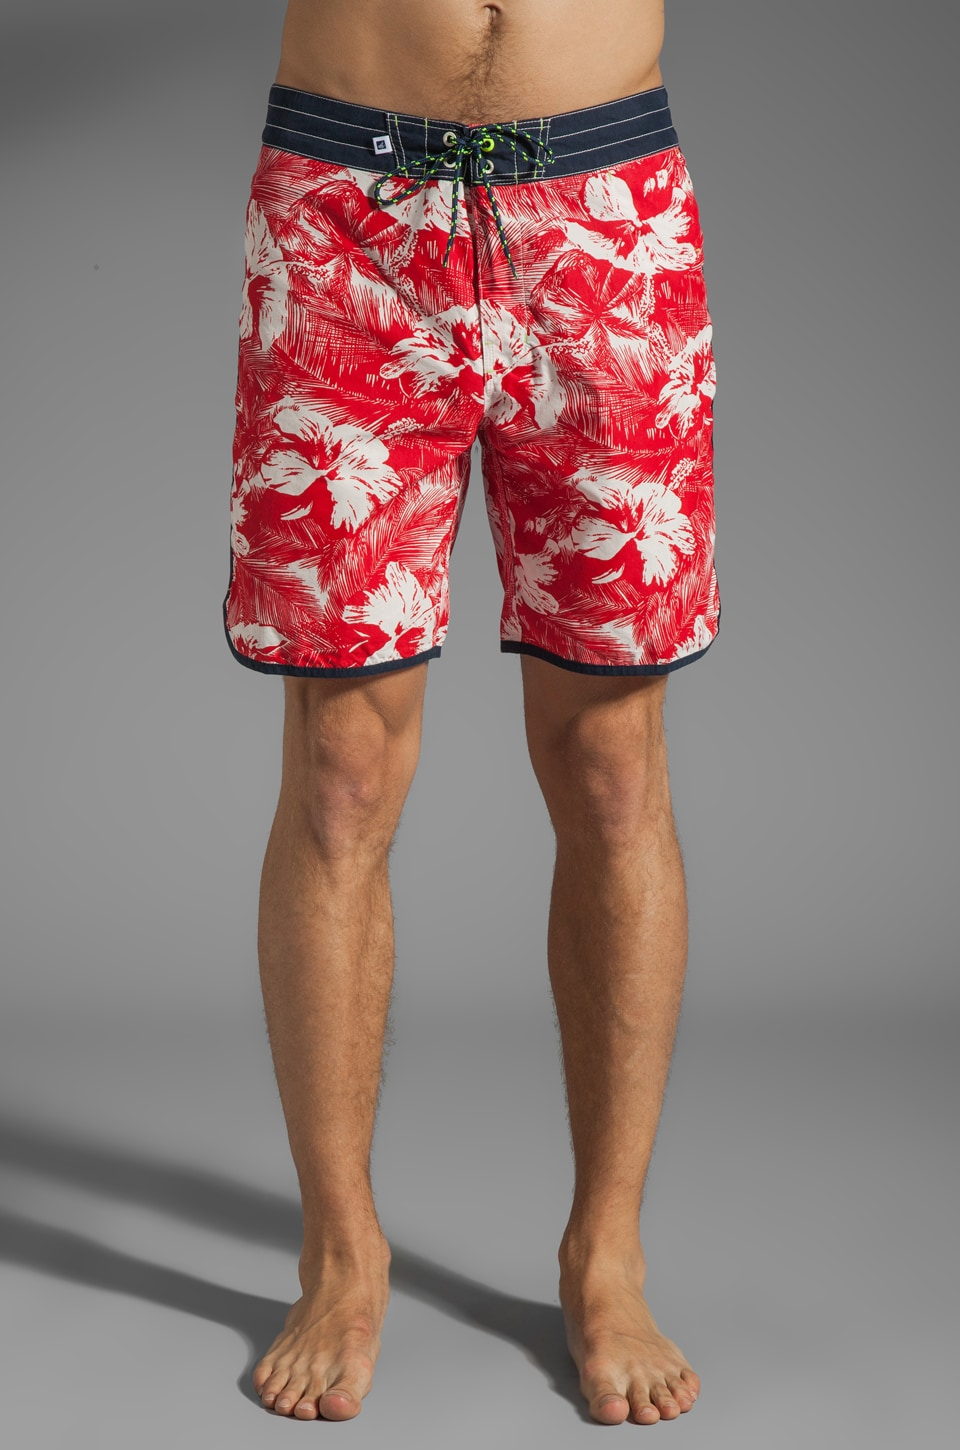 Sperry Top-Sider Tropical Hibiscus Boardshort in Crimson